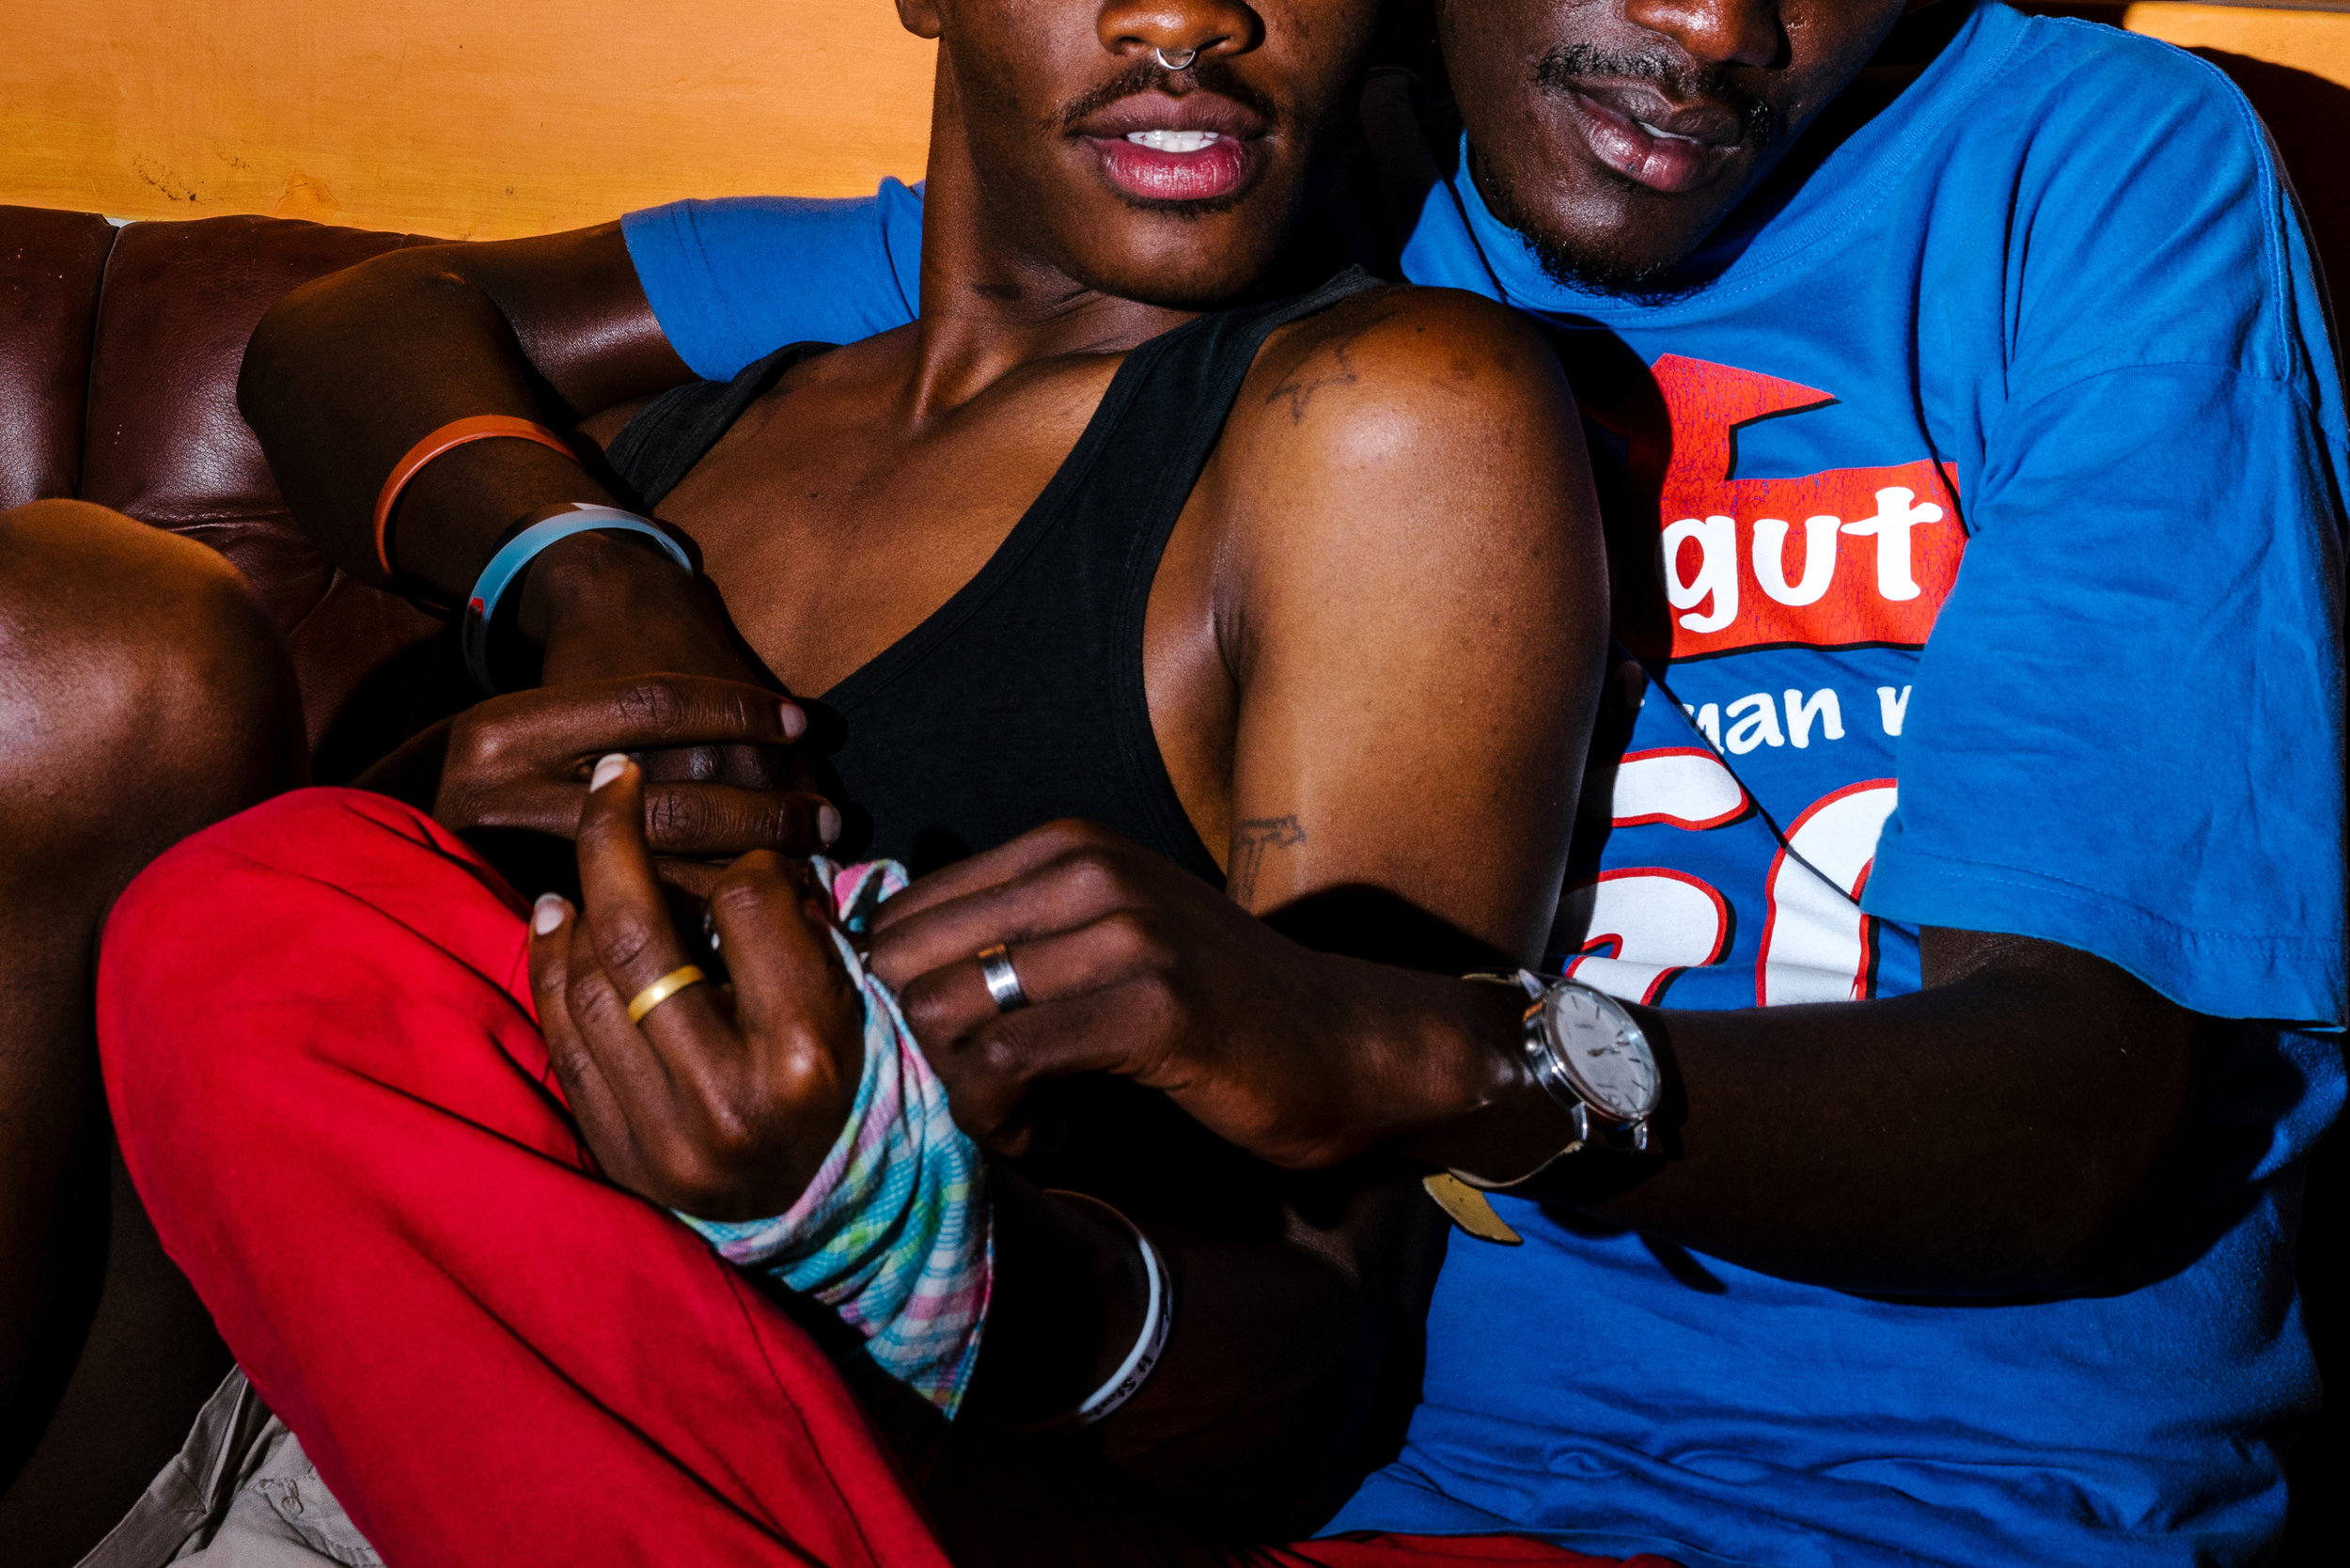 A couple, both gay refugees from Uganda, pose for a portrait outside the home they lived in in a town just outside of Nairobi, Kenya.